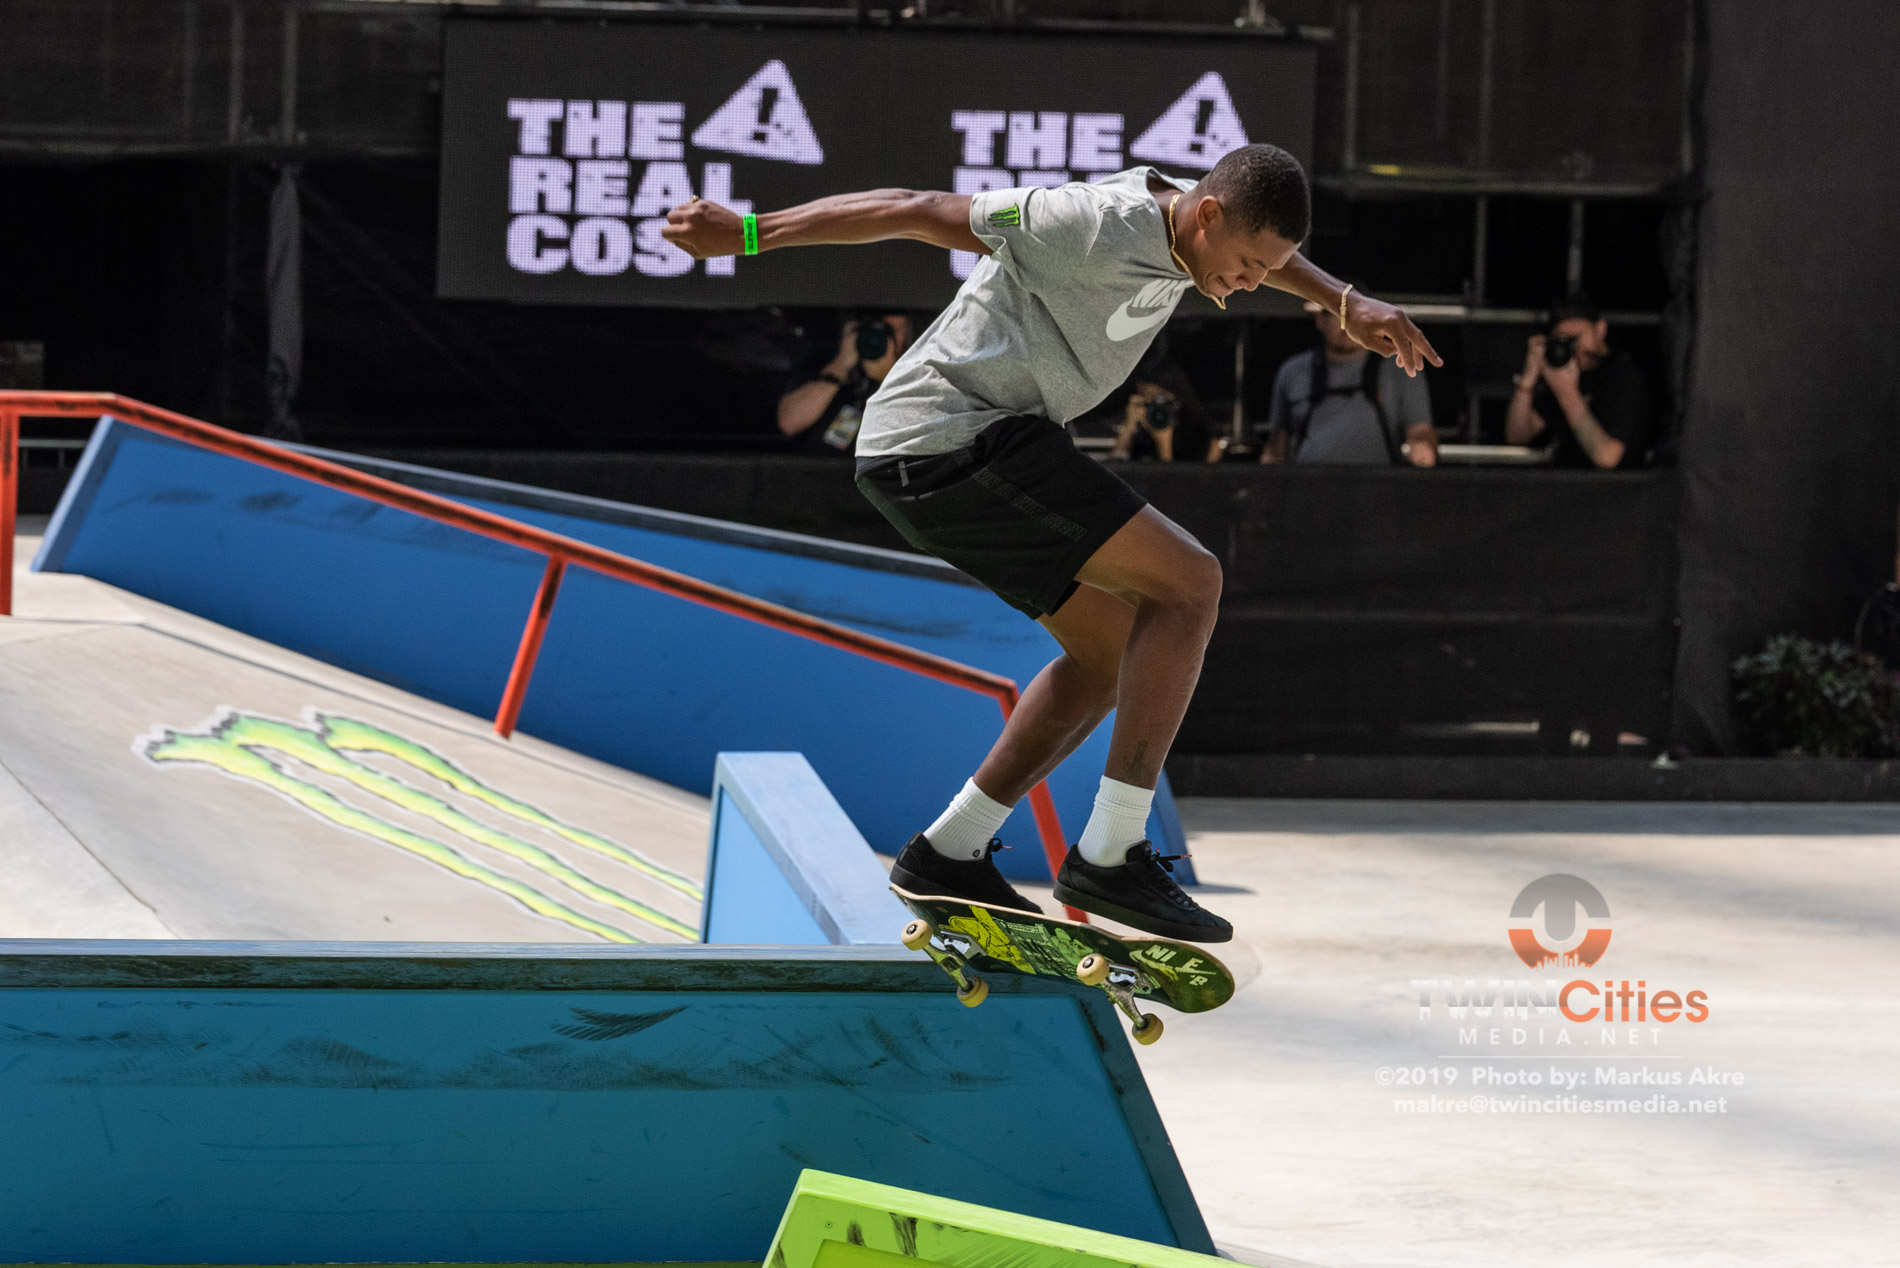 2019-X-Games-Day-4-Skateboard-Street-Best-Trick-4